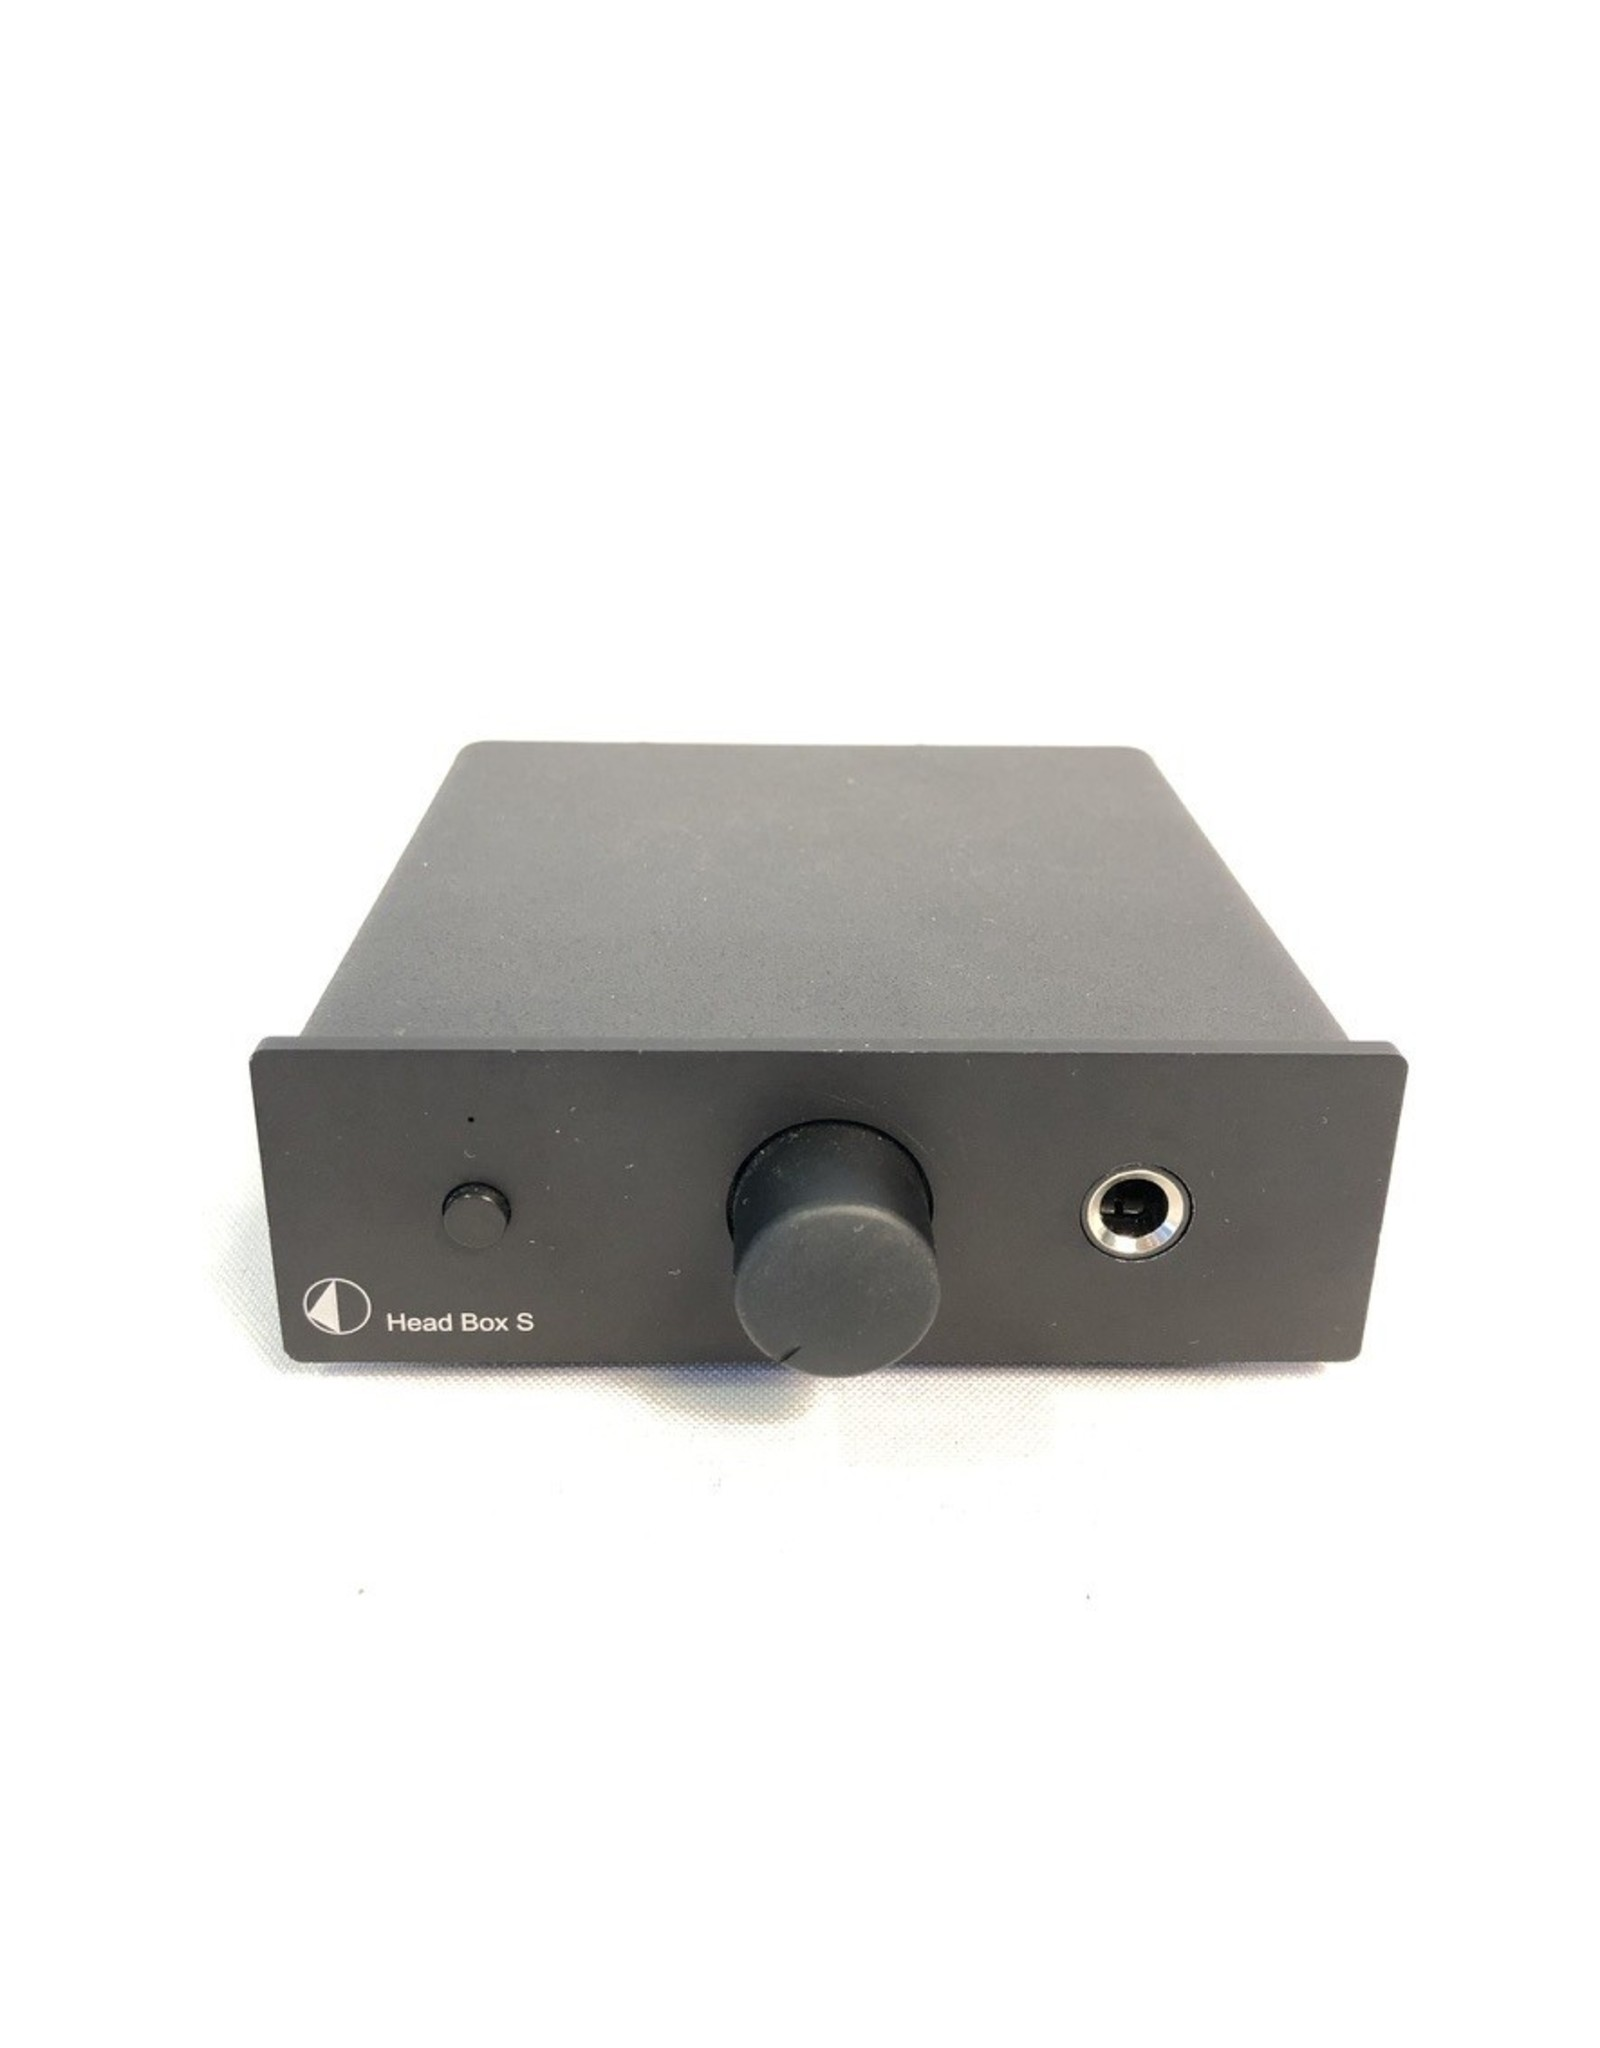 Pro-Ject Pro-Ject Head Box S Headphone Amp USED^